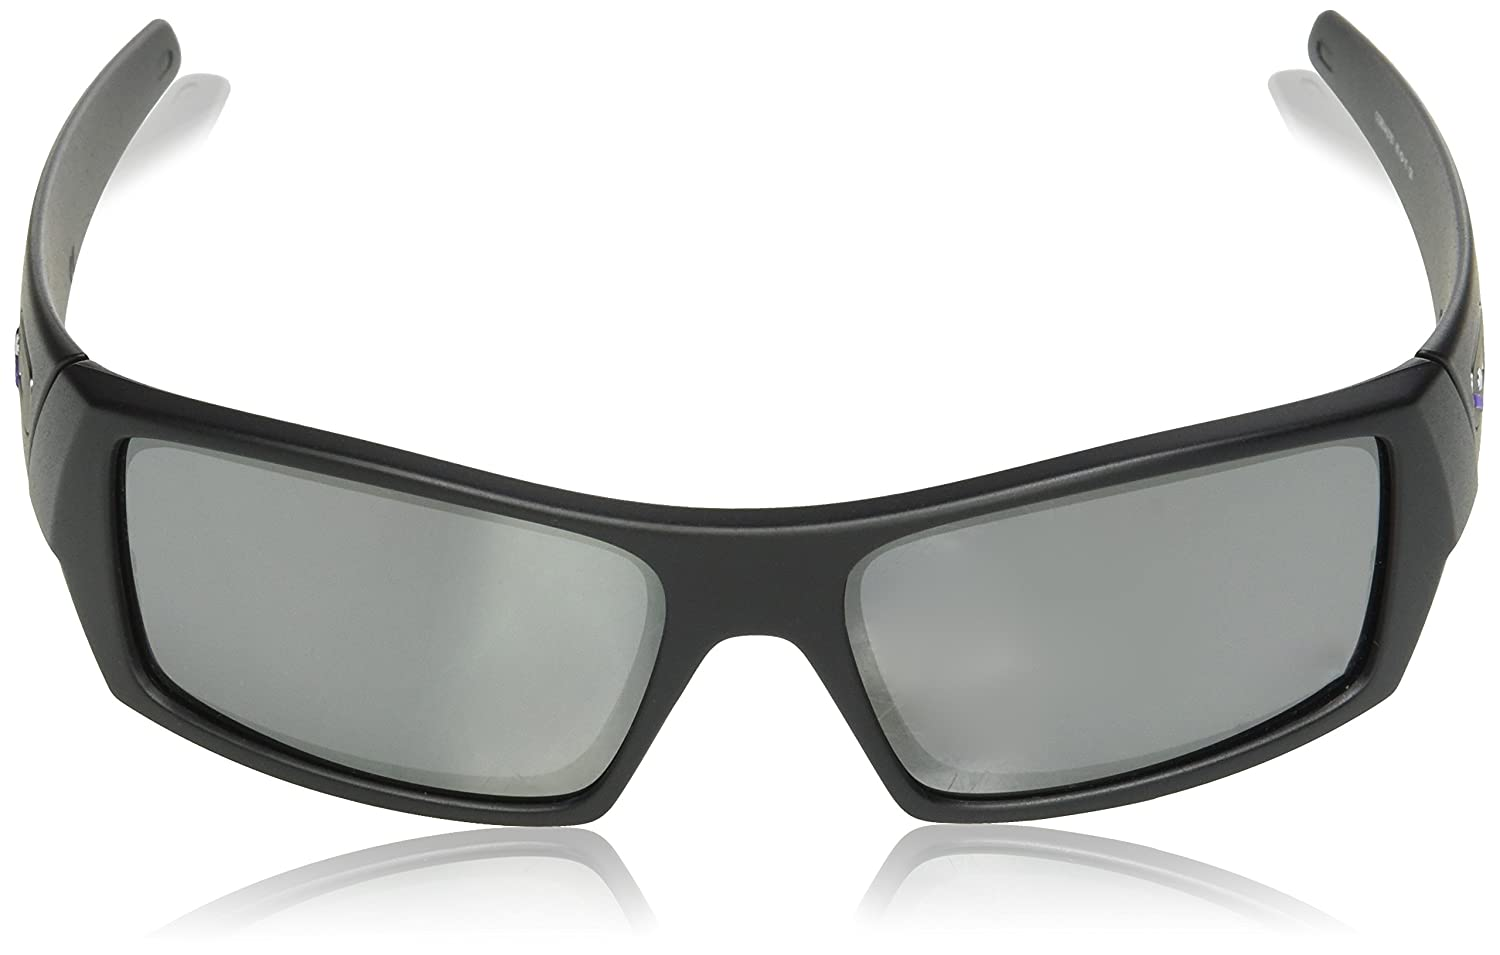 91f86a4b580 Amazon.com  Oakley Mens Gascan Infinite Hero Sunglasses